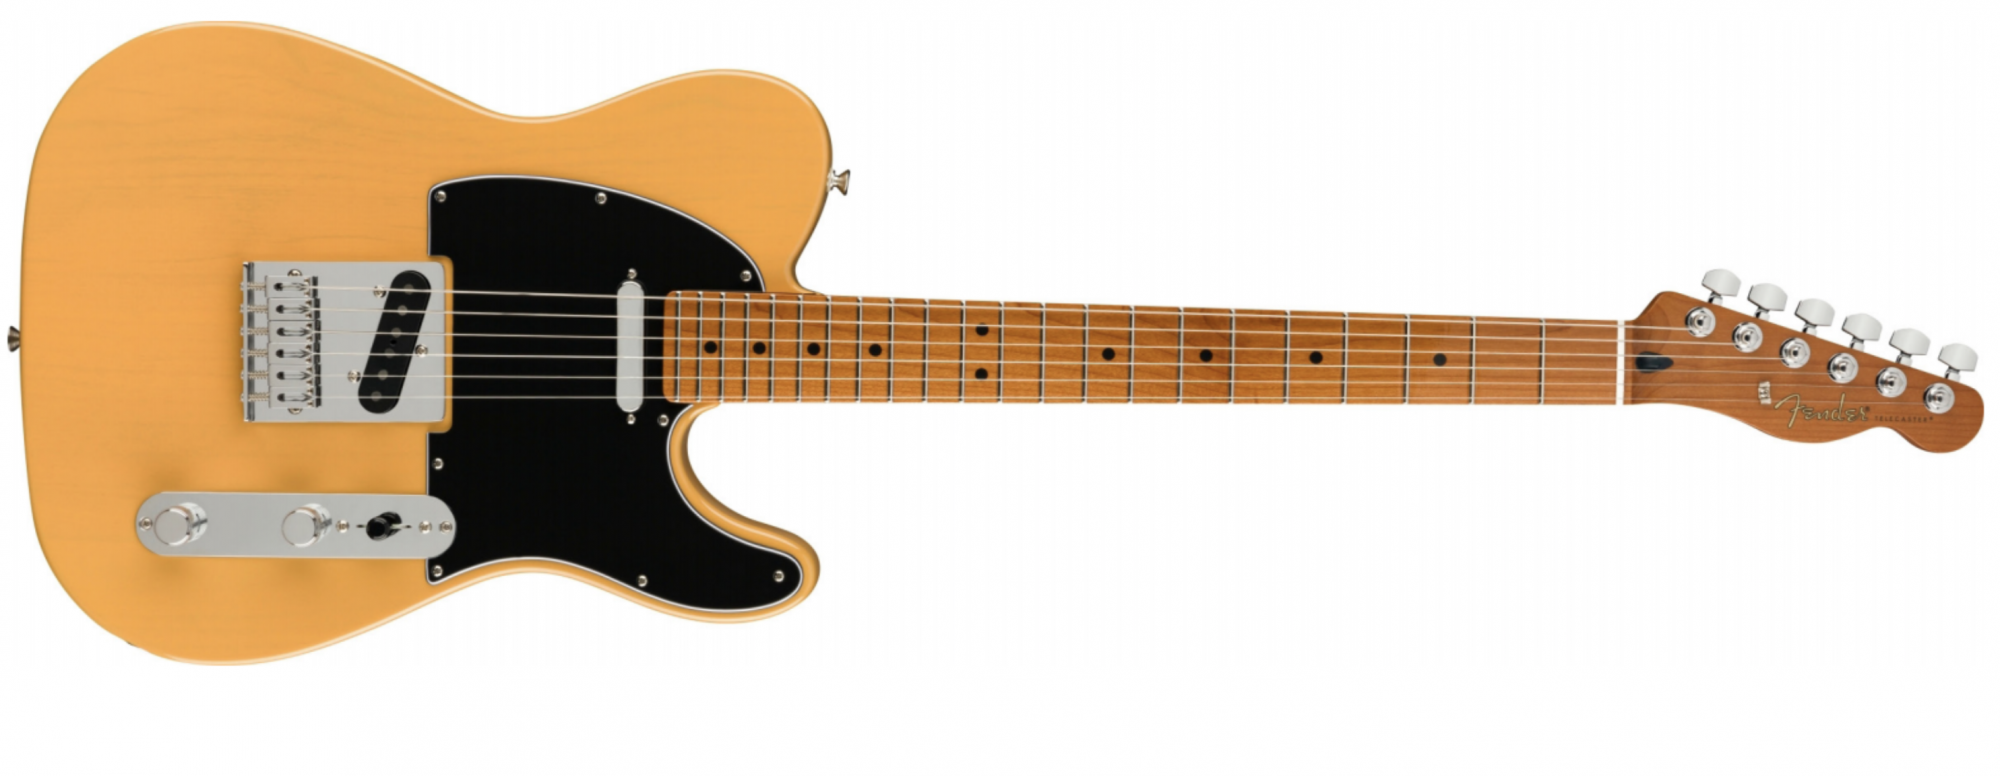 Fender Limited Edition Player Telecaster with Roasted Maple Neck, Maple Fingerboard, Butterscotch Blonde 0144581550